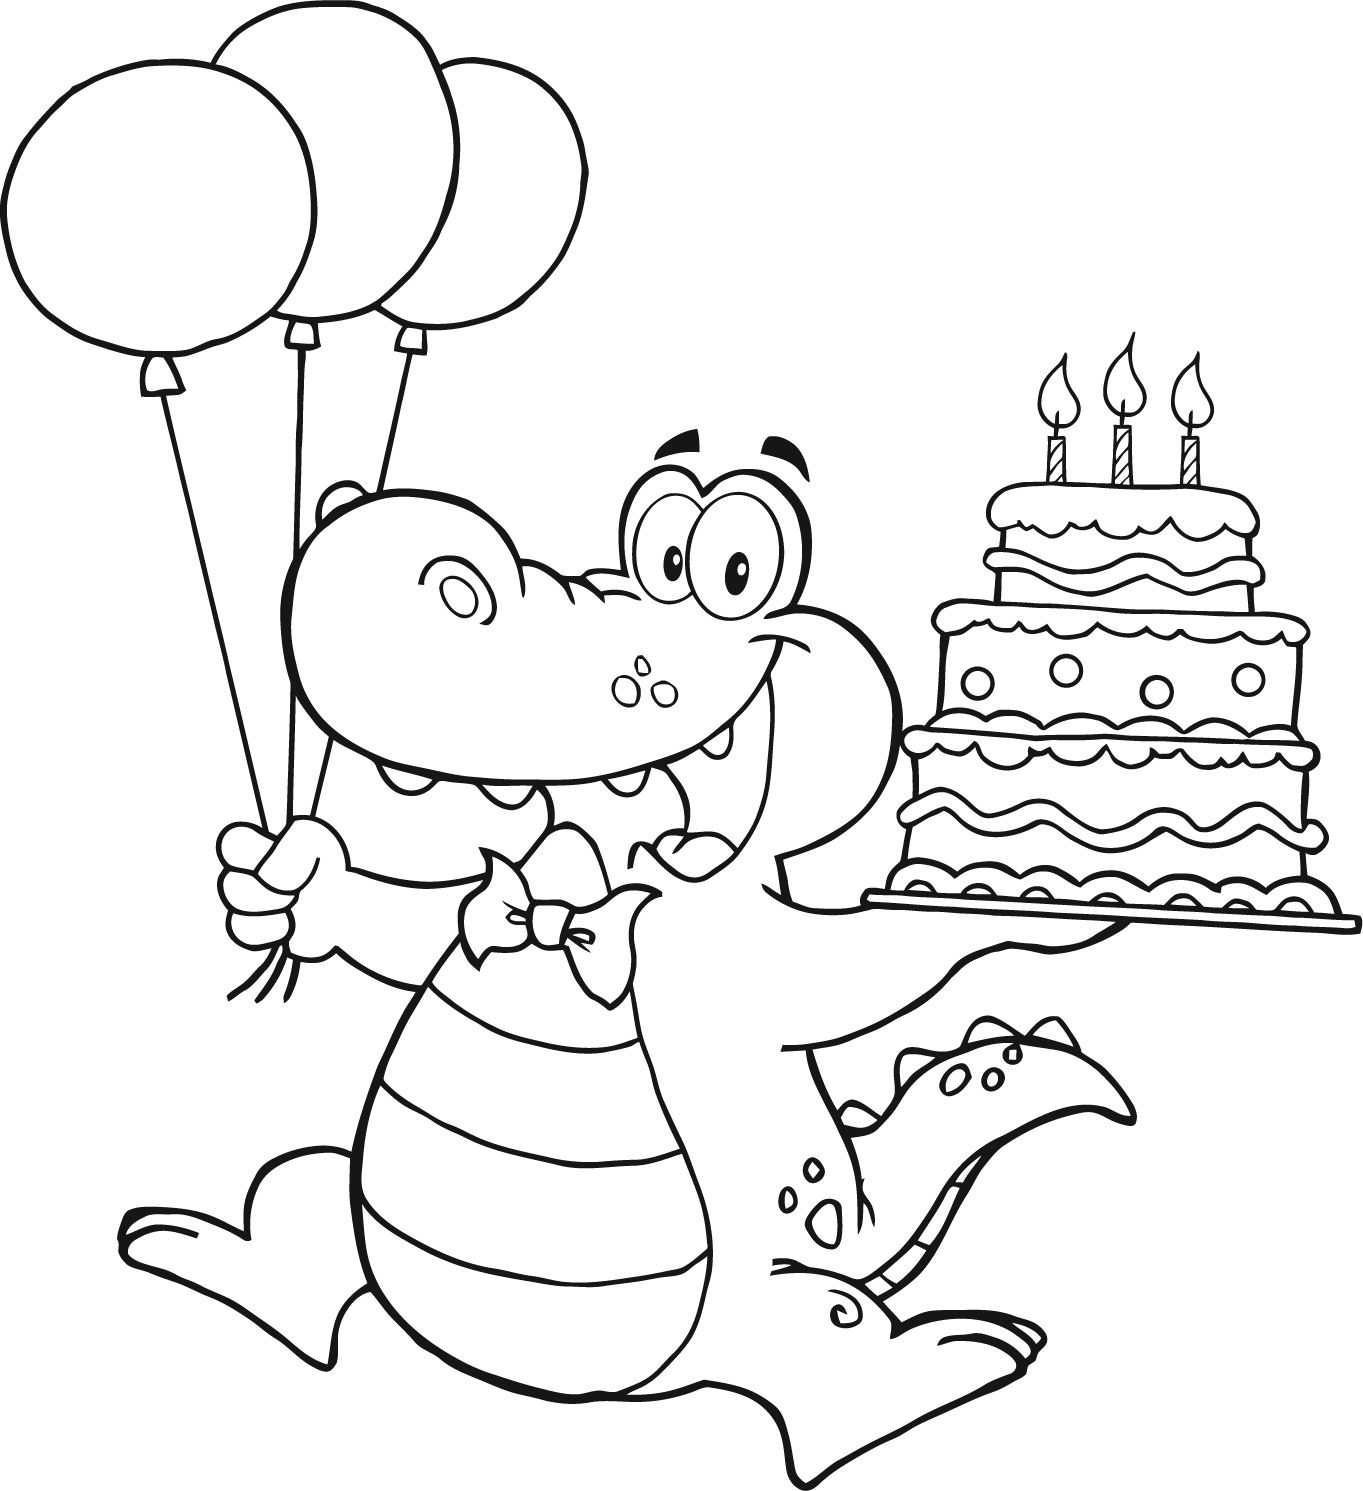 alligator holding birthday cake for kids | coloring pages ...